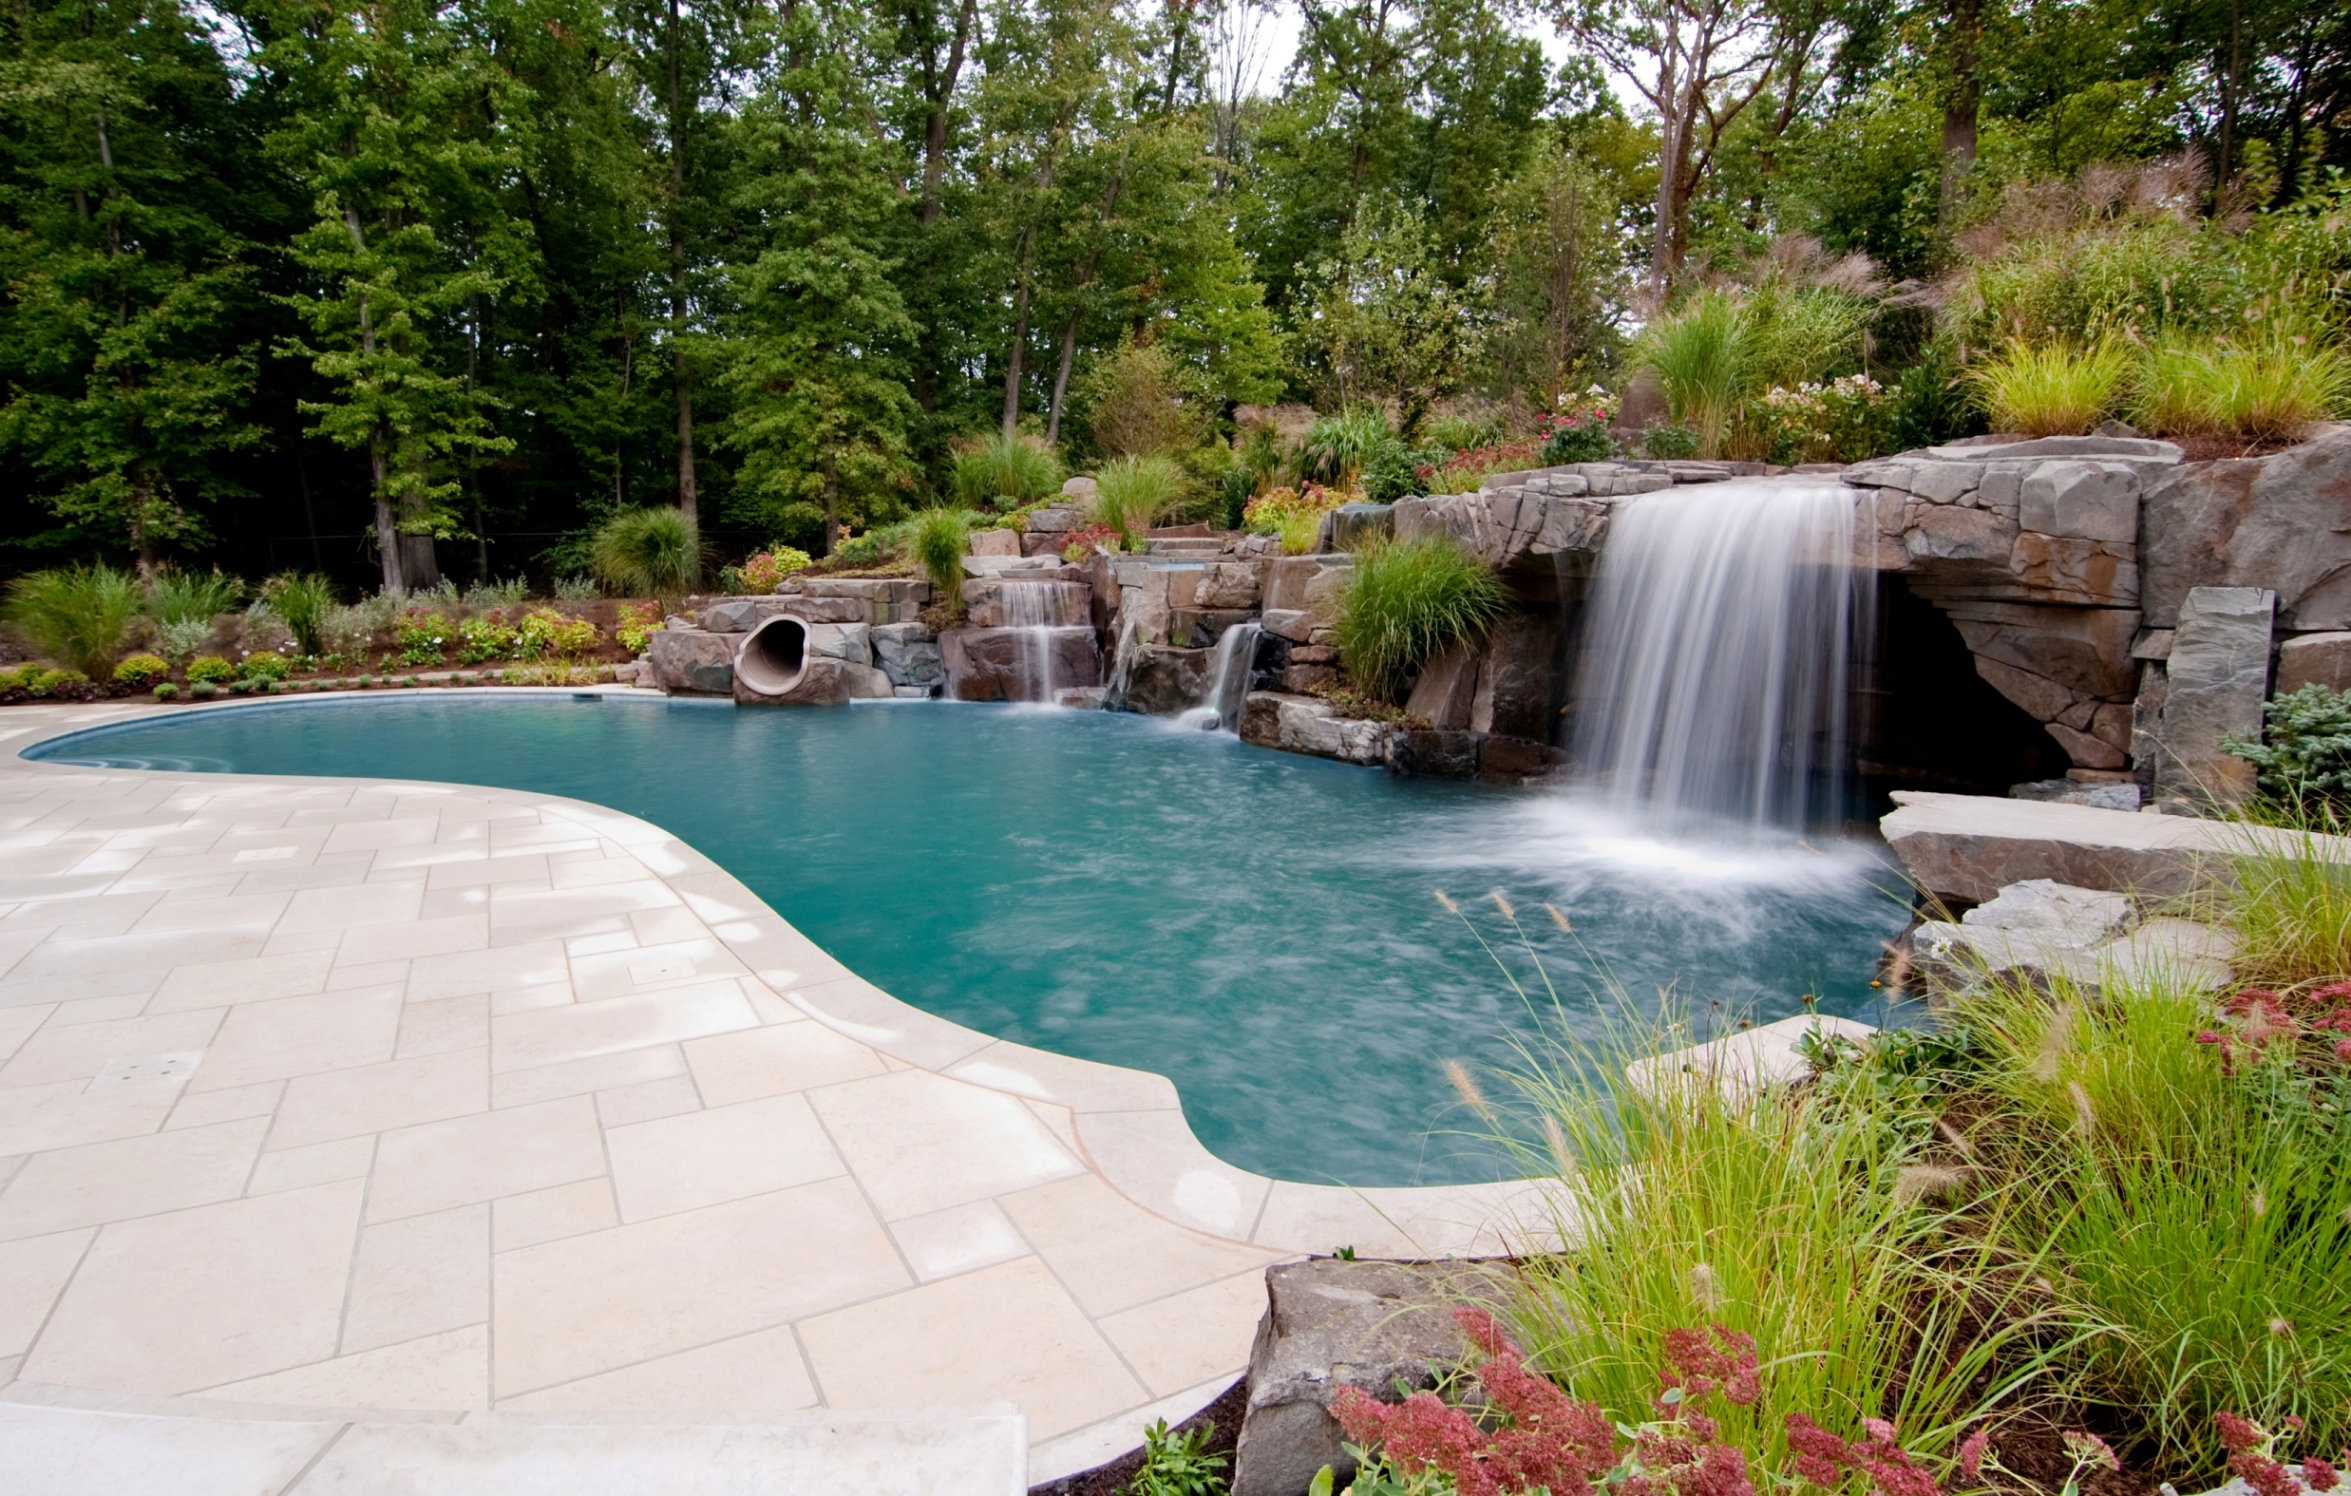 New jersey inground pool company earns international award for Images of inground swimming pools